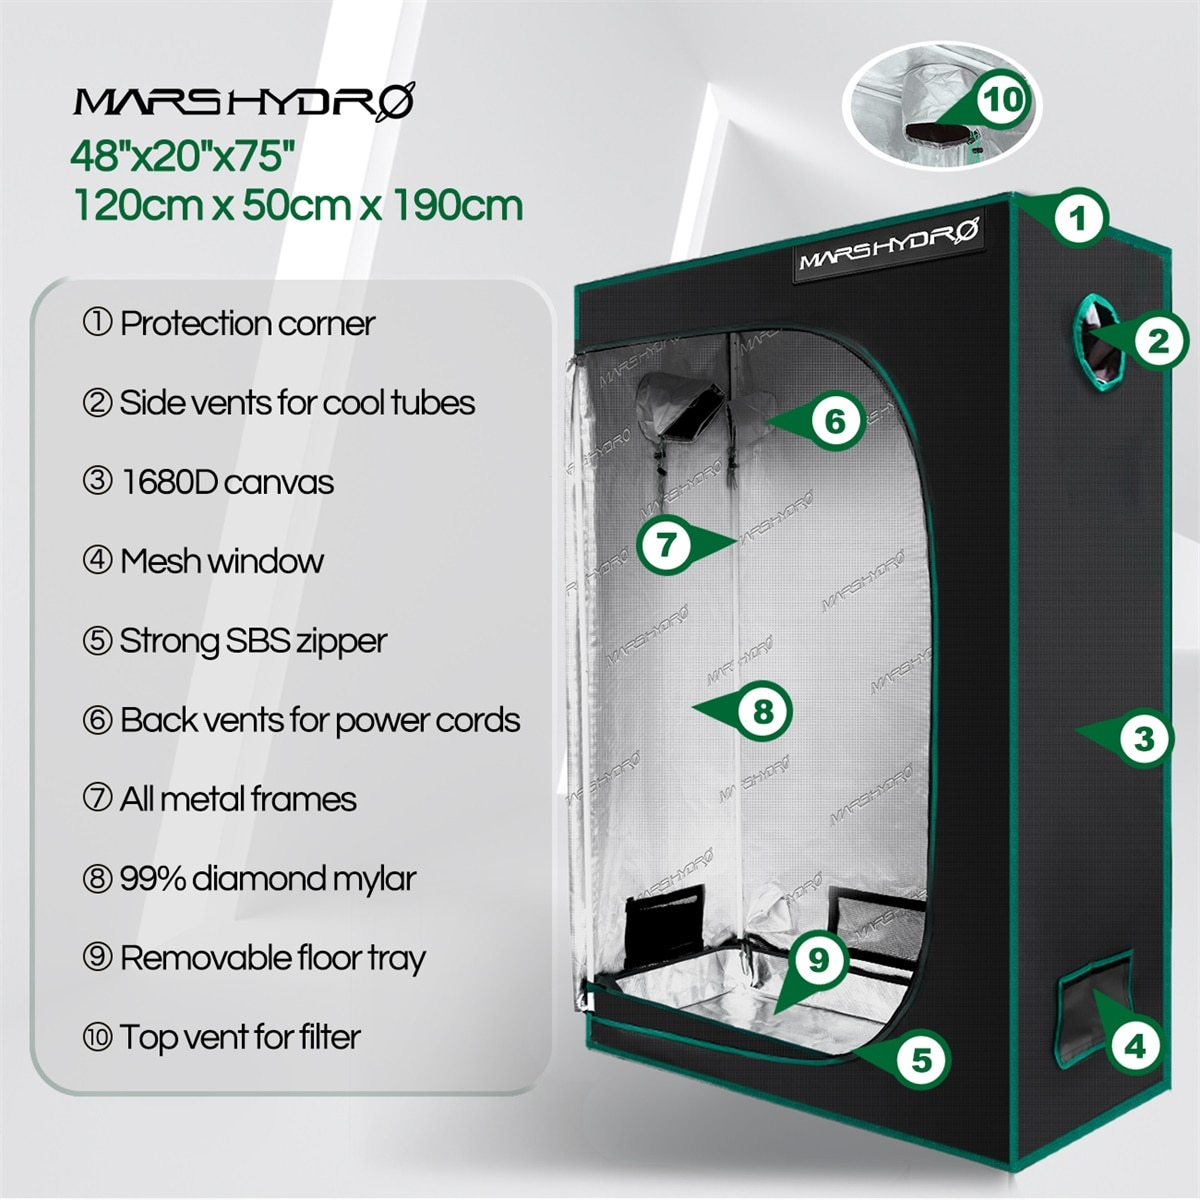 Mars Hydro SP 3000 120x50x190CM Grow Tent LED Grow Light Samsung Lm301D 300W Meanwell Driver Hydroponics Phytolamp for Plants enlarge